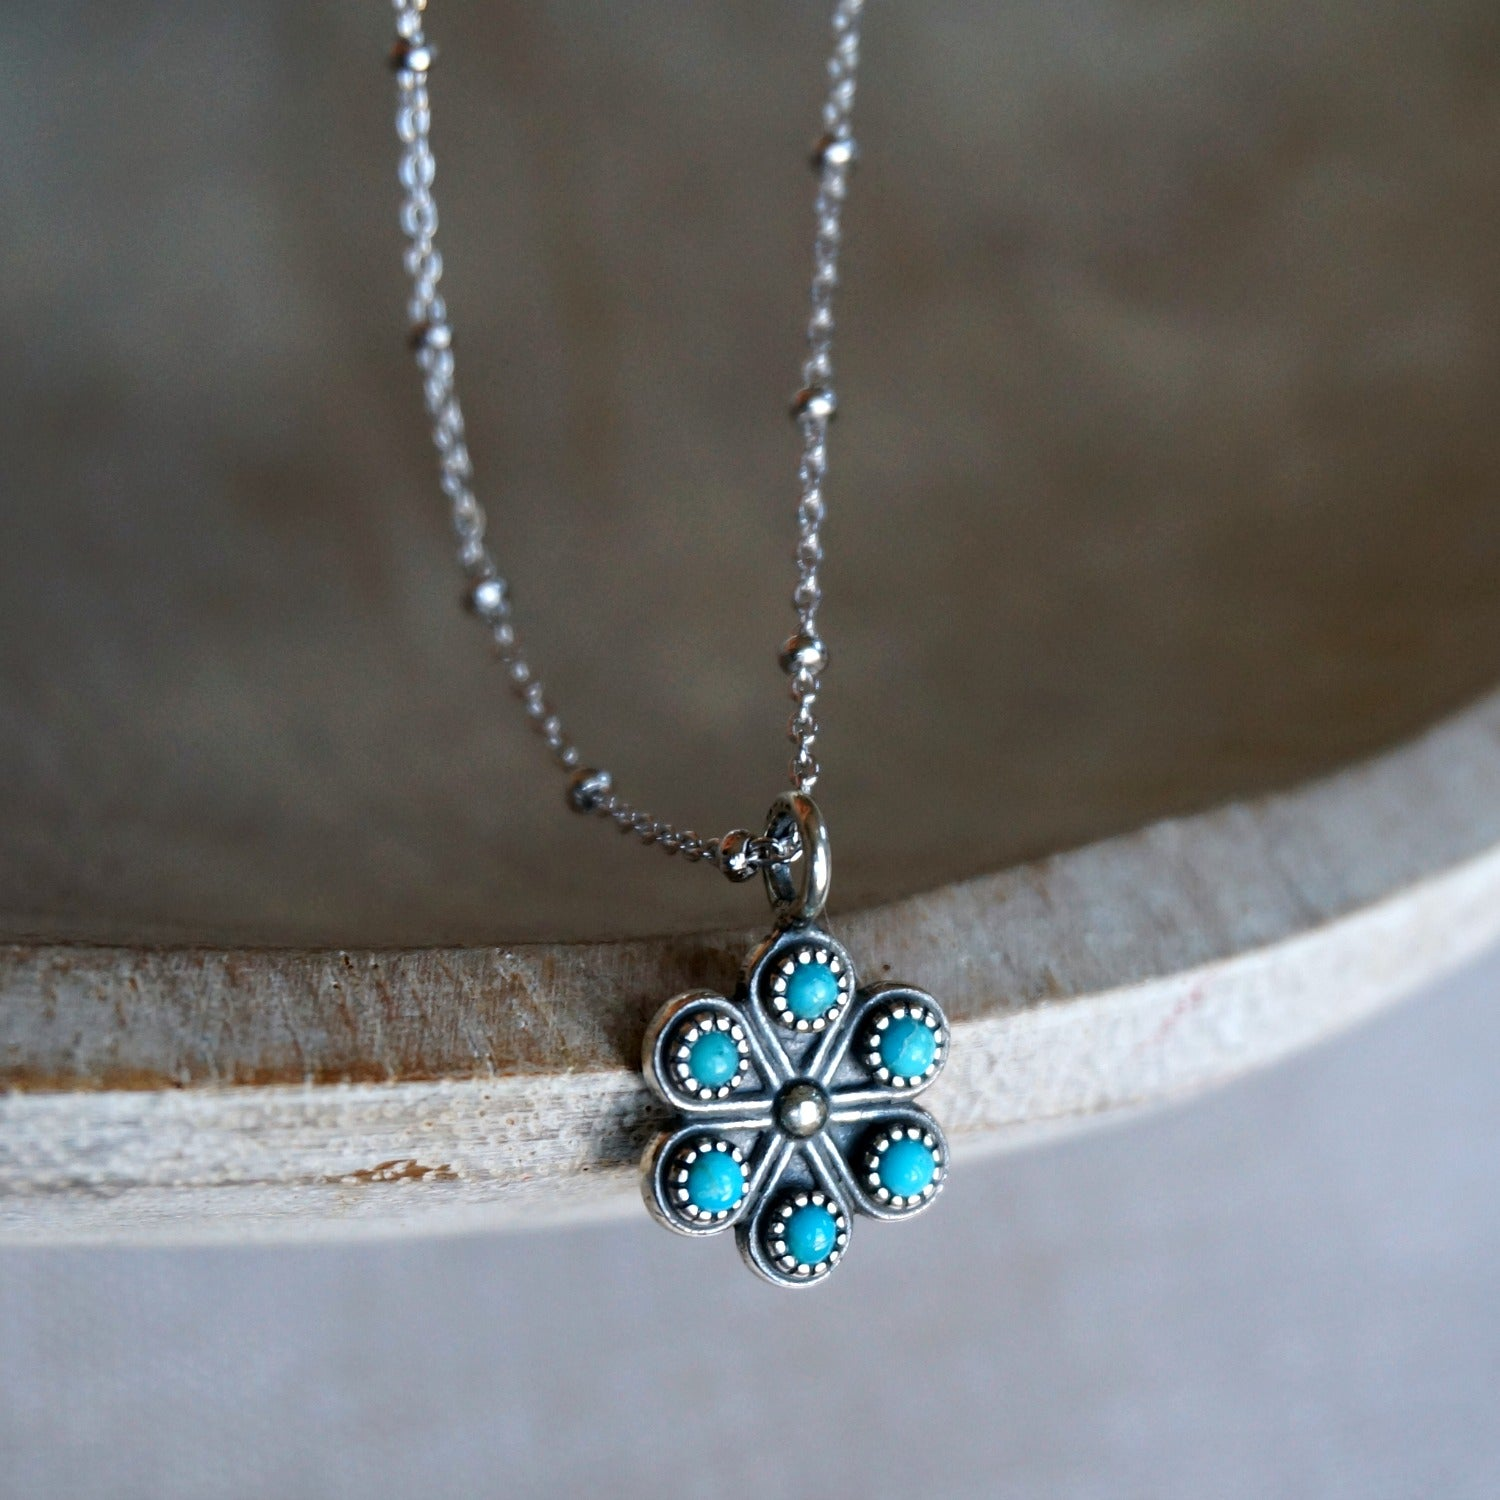 Iris Turquoise Necklace - SOWELL JEWELRY